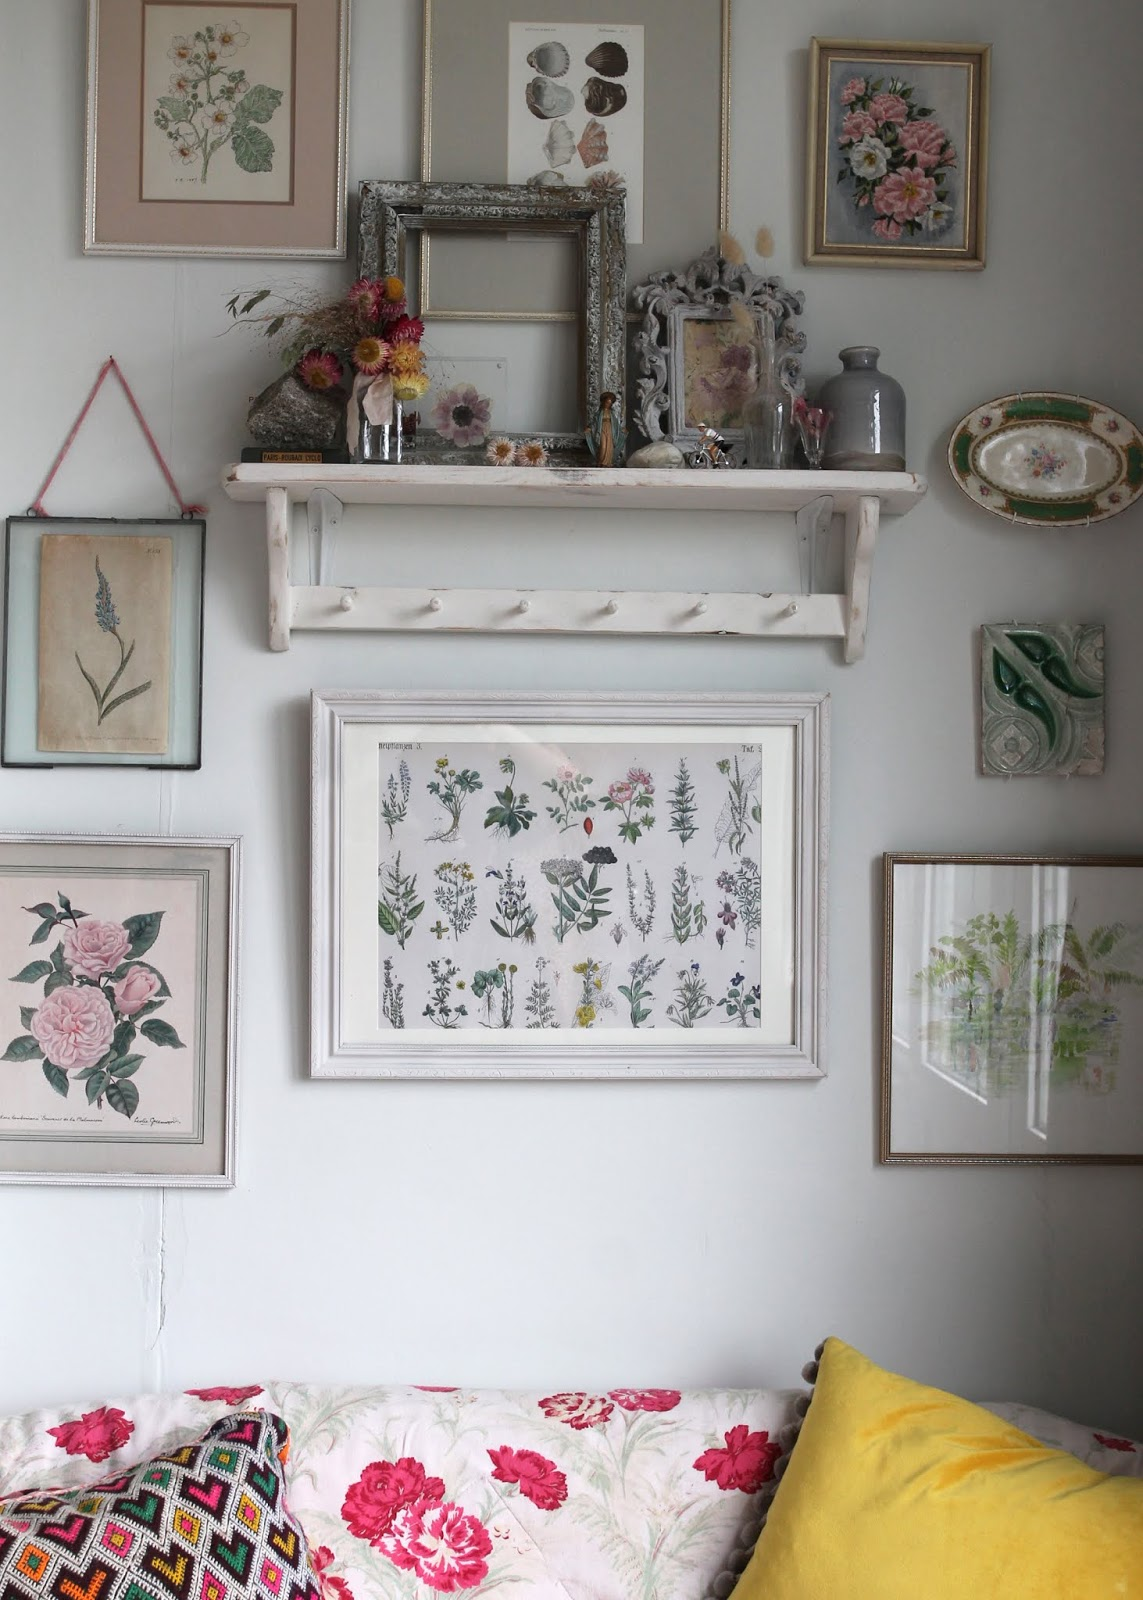 DIY – Framing vintage prints in collaboration with Photowall